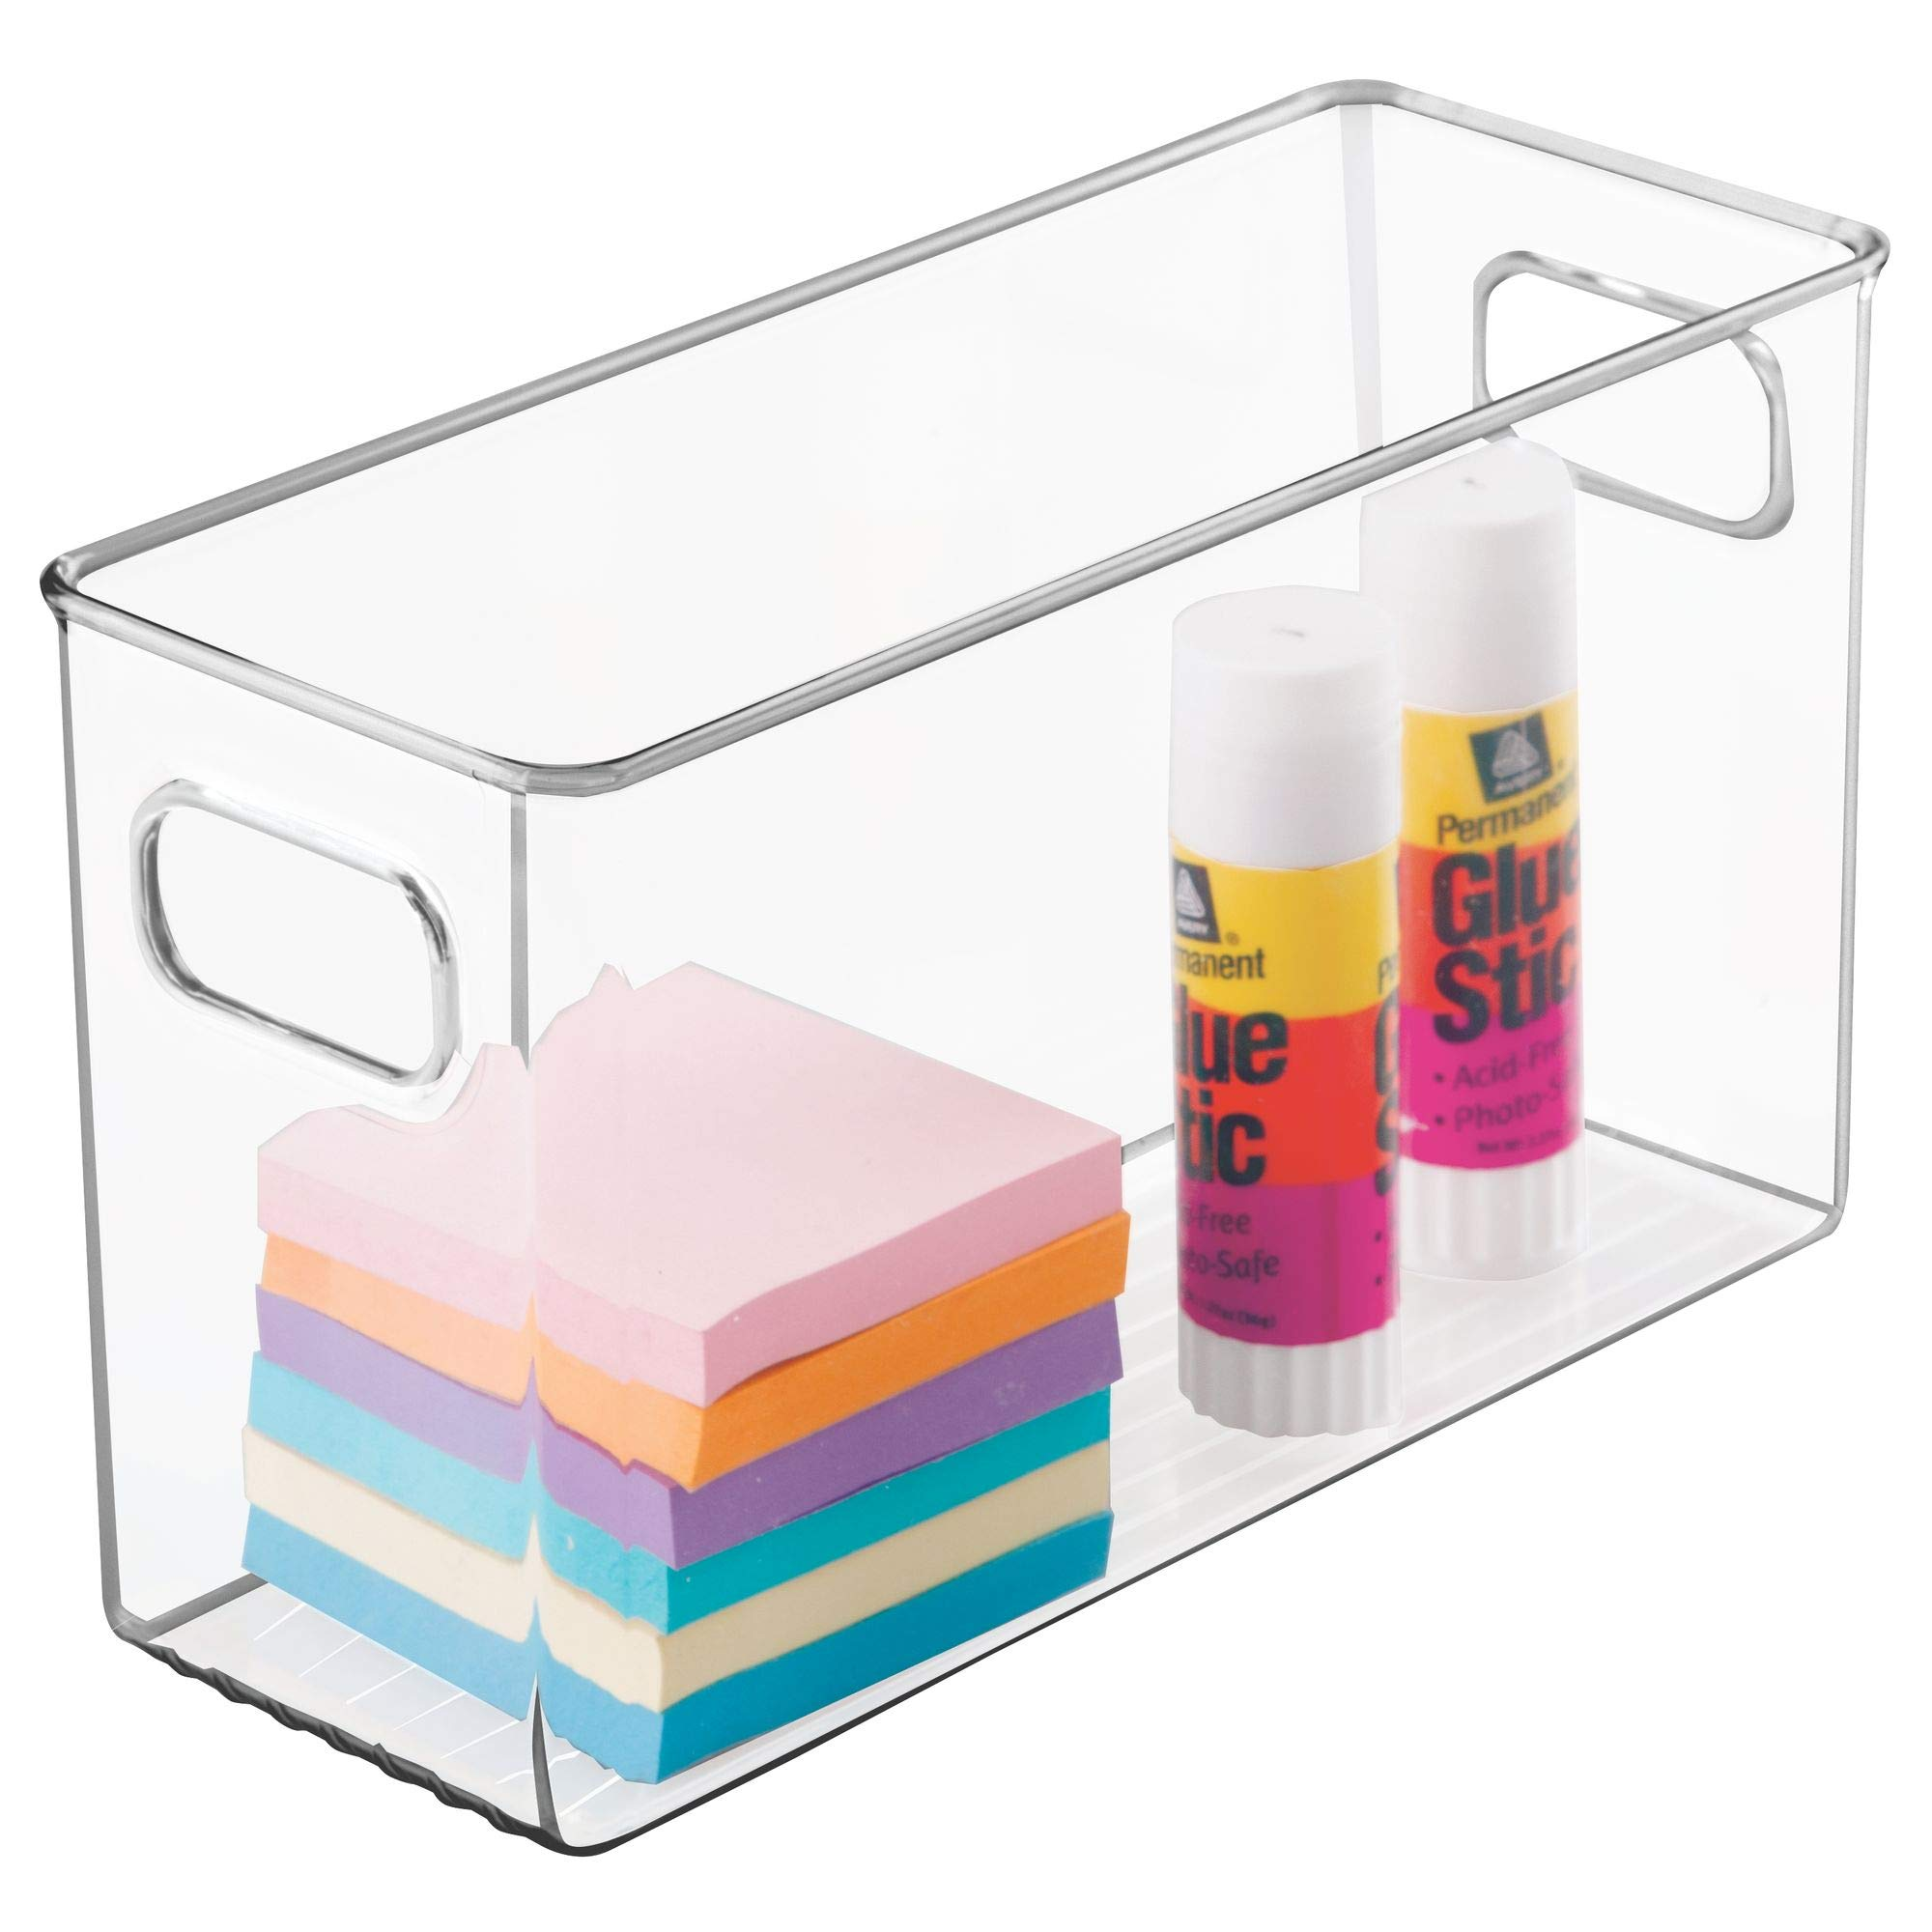 mDesign Office Supplies Desk Organizer Bin for Pens, Pencils, Markers, Highlighters, Tape - Pack of 4, 10'' x 4'' x 6'', Clear by mDesign (Image #6)